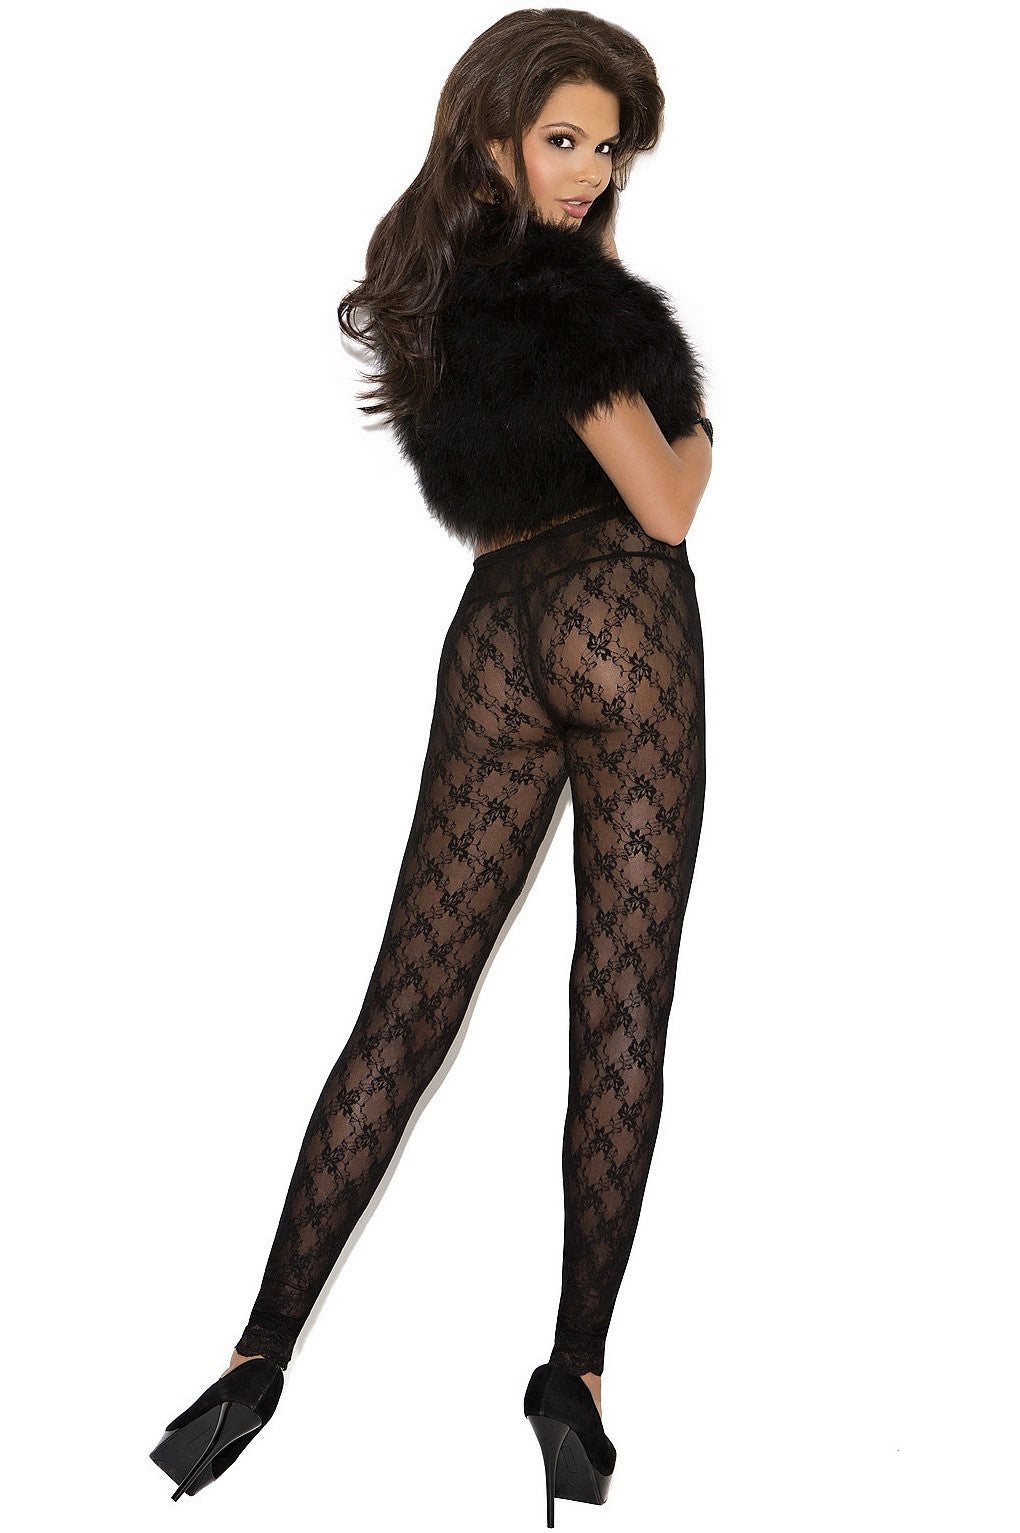 EM-1764 Black lace leggings - Sexylingerieland  - 2